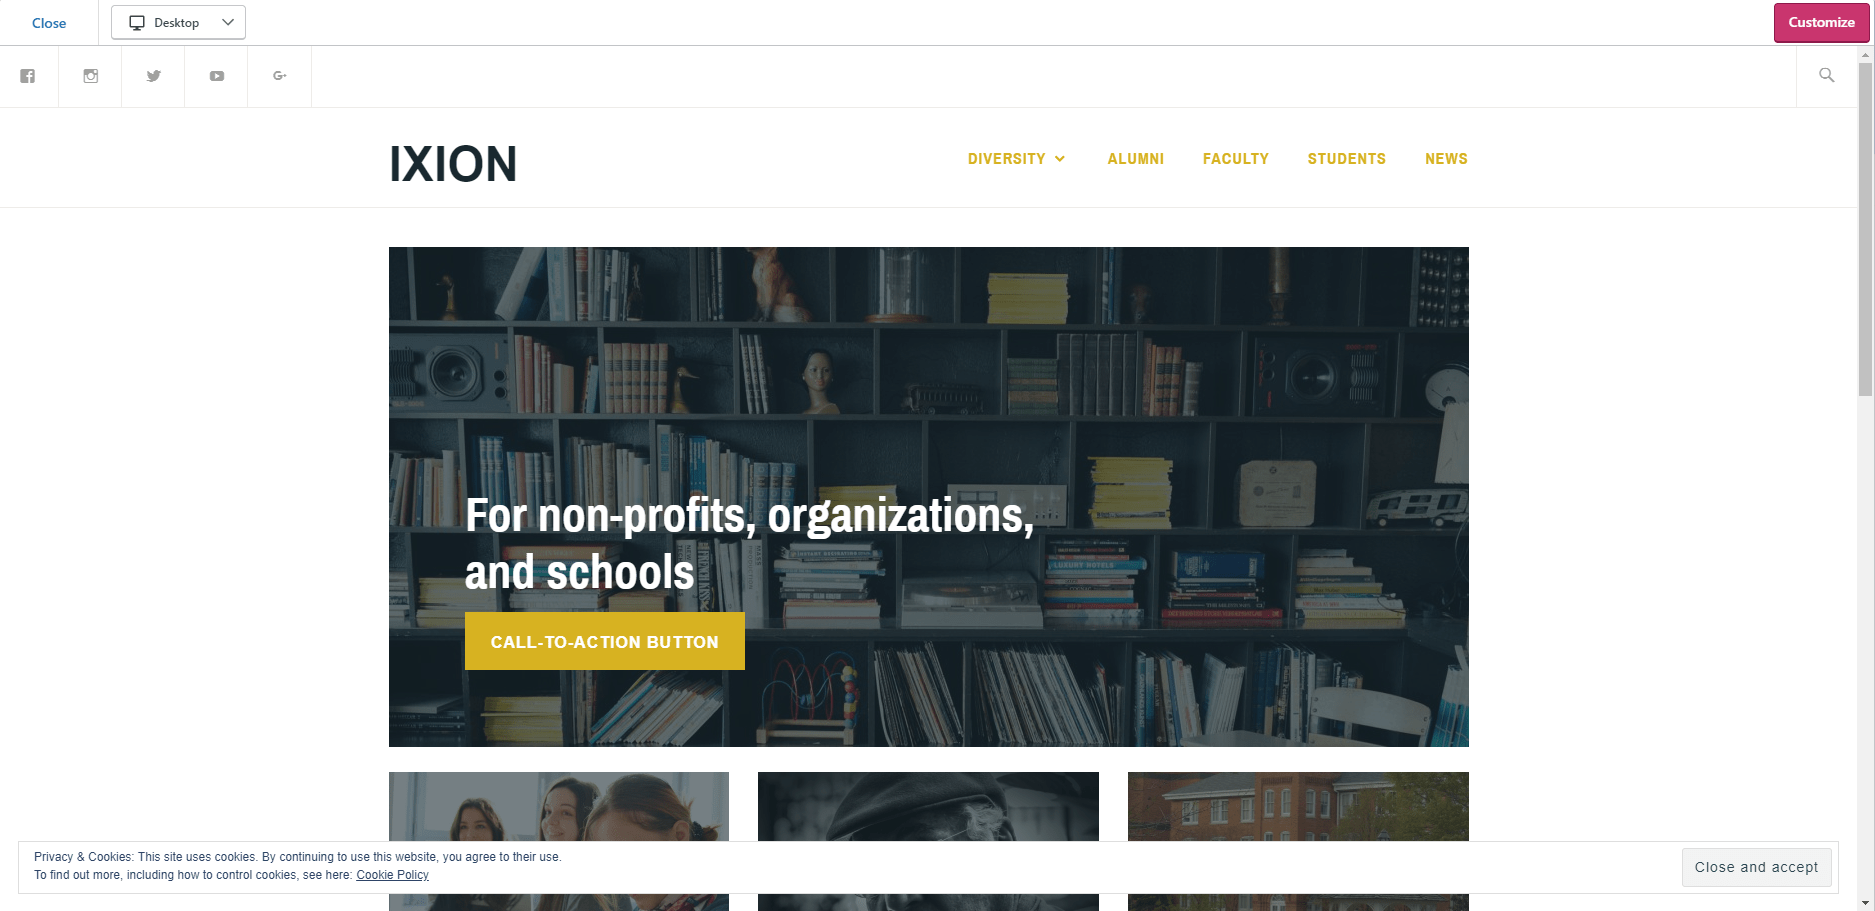 WordPress IXION Nonprofits Template